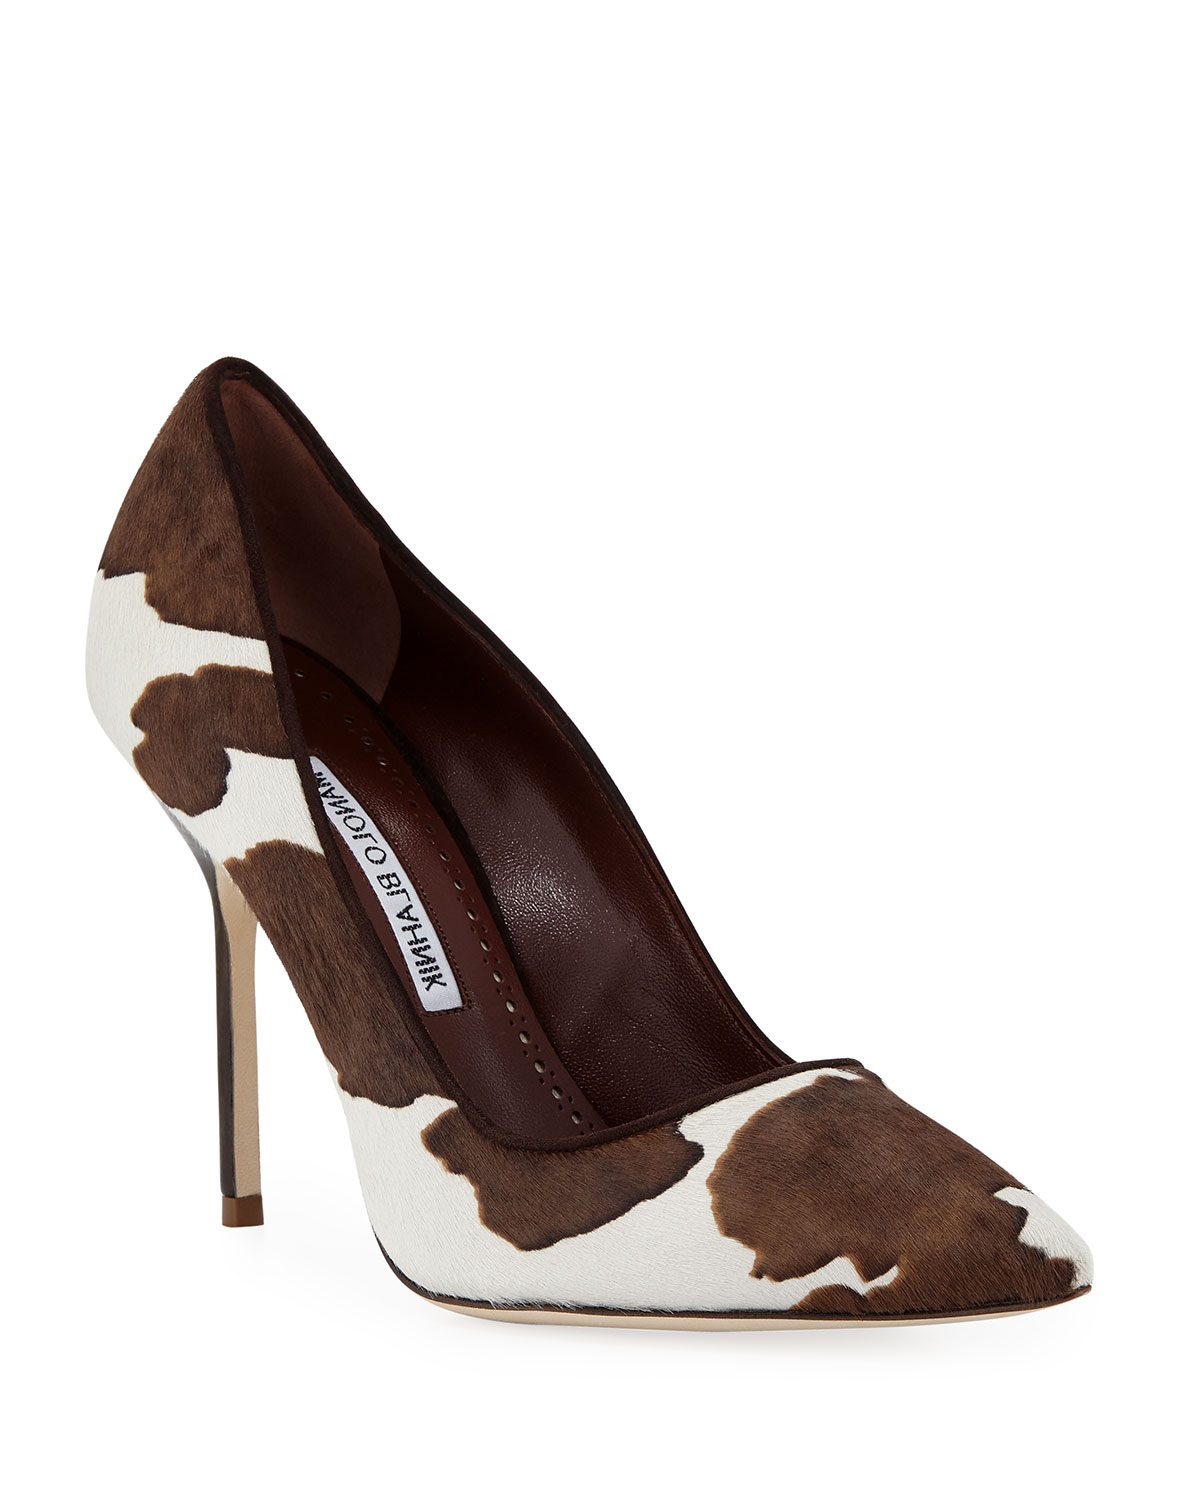 BB COW-PRINT POINTED PUMPS